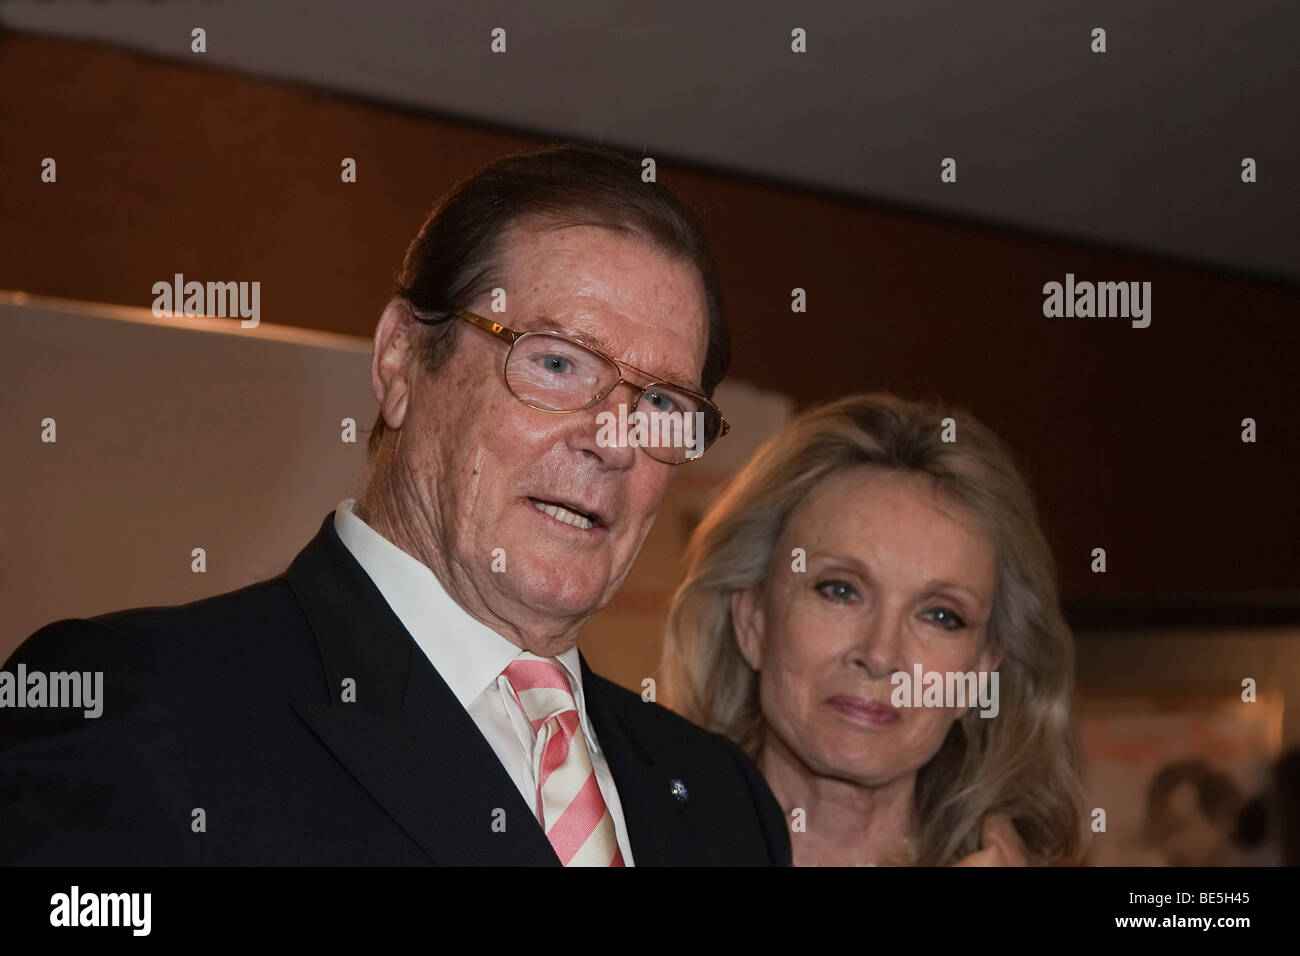 The English actor and former James Bond actor Sir Roger Moore with his wife Lady Kristina Tholstrup Stock Photo